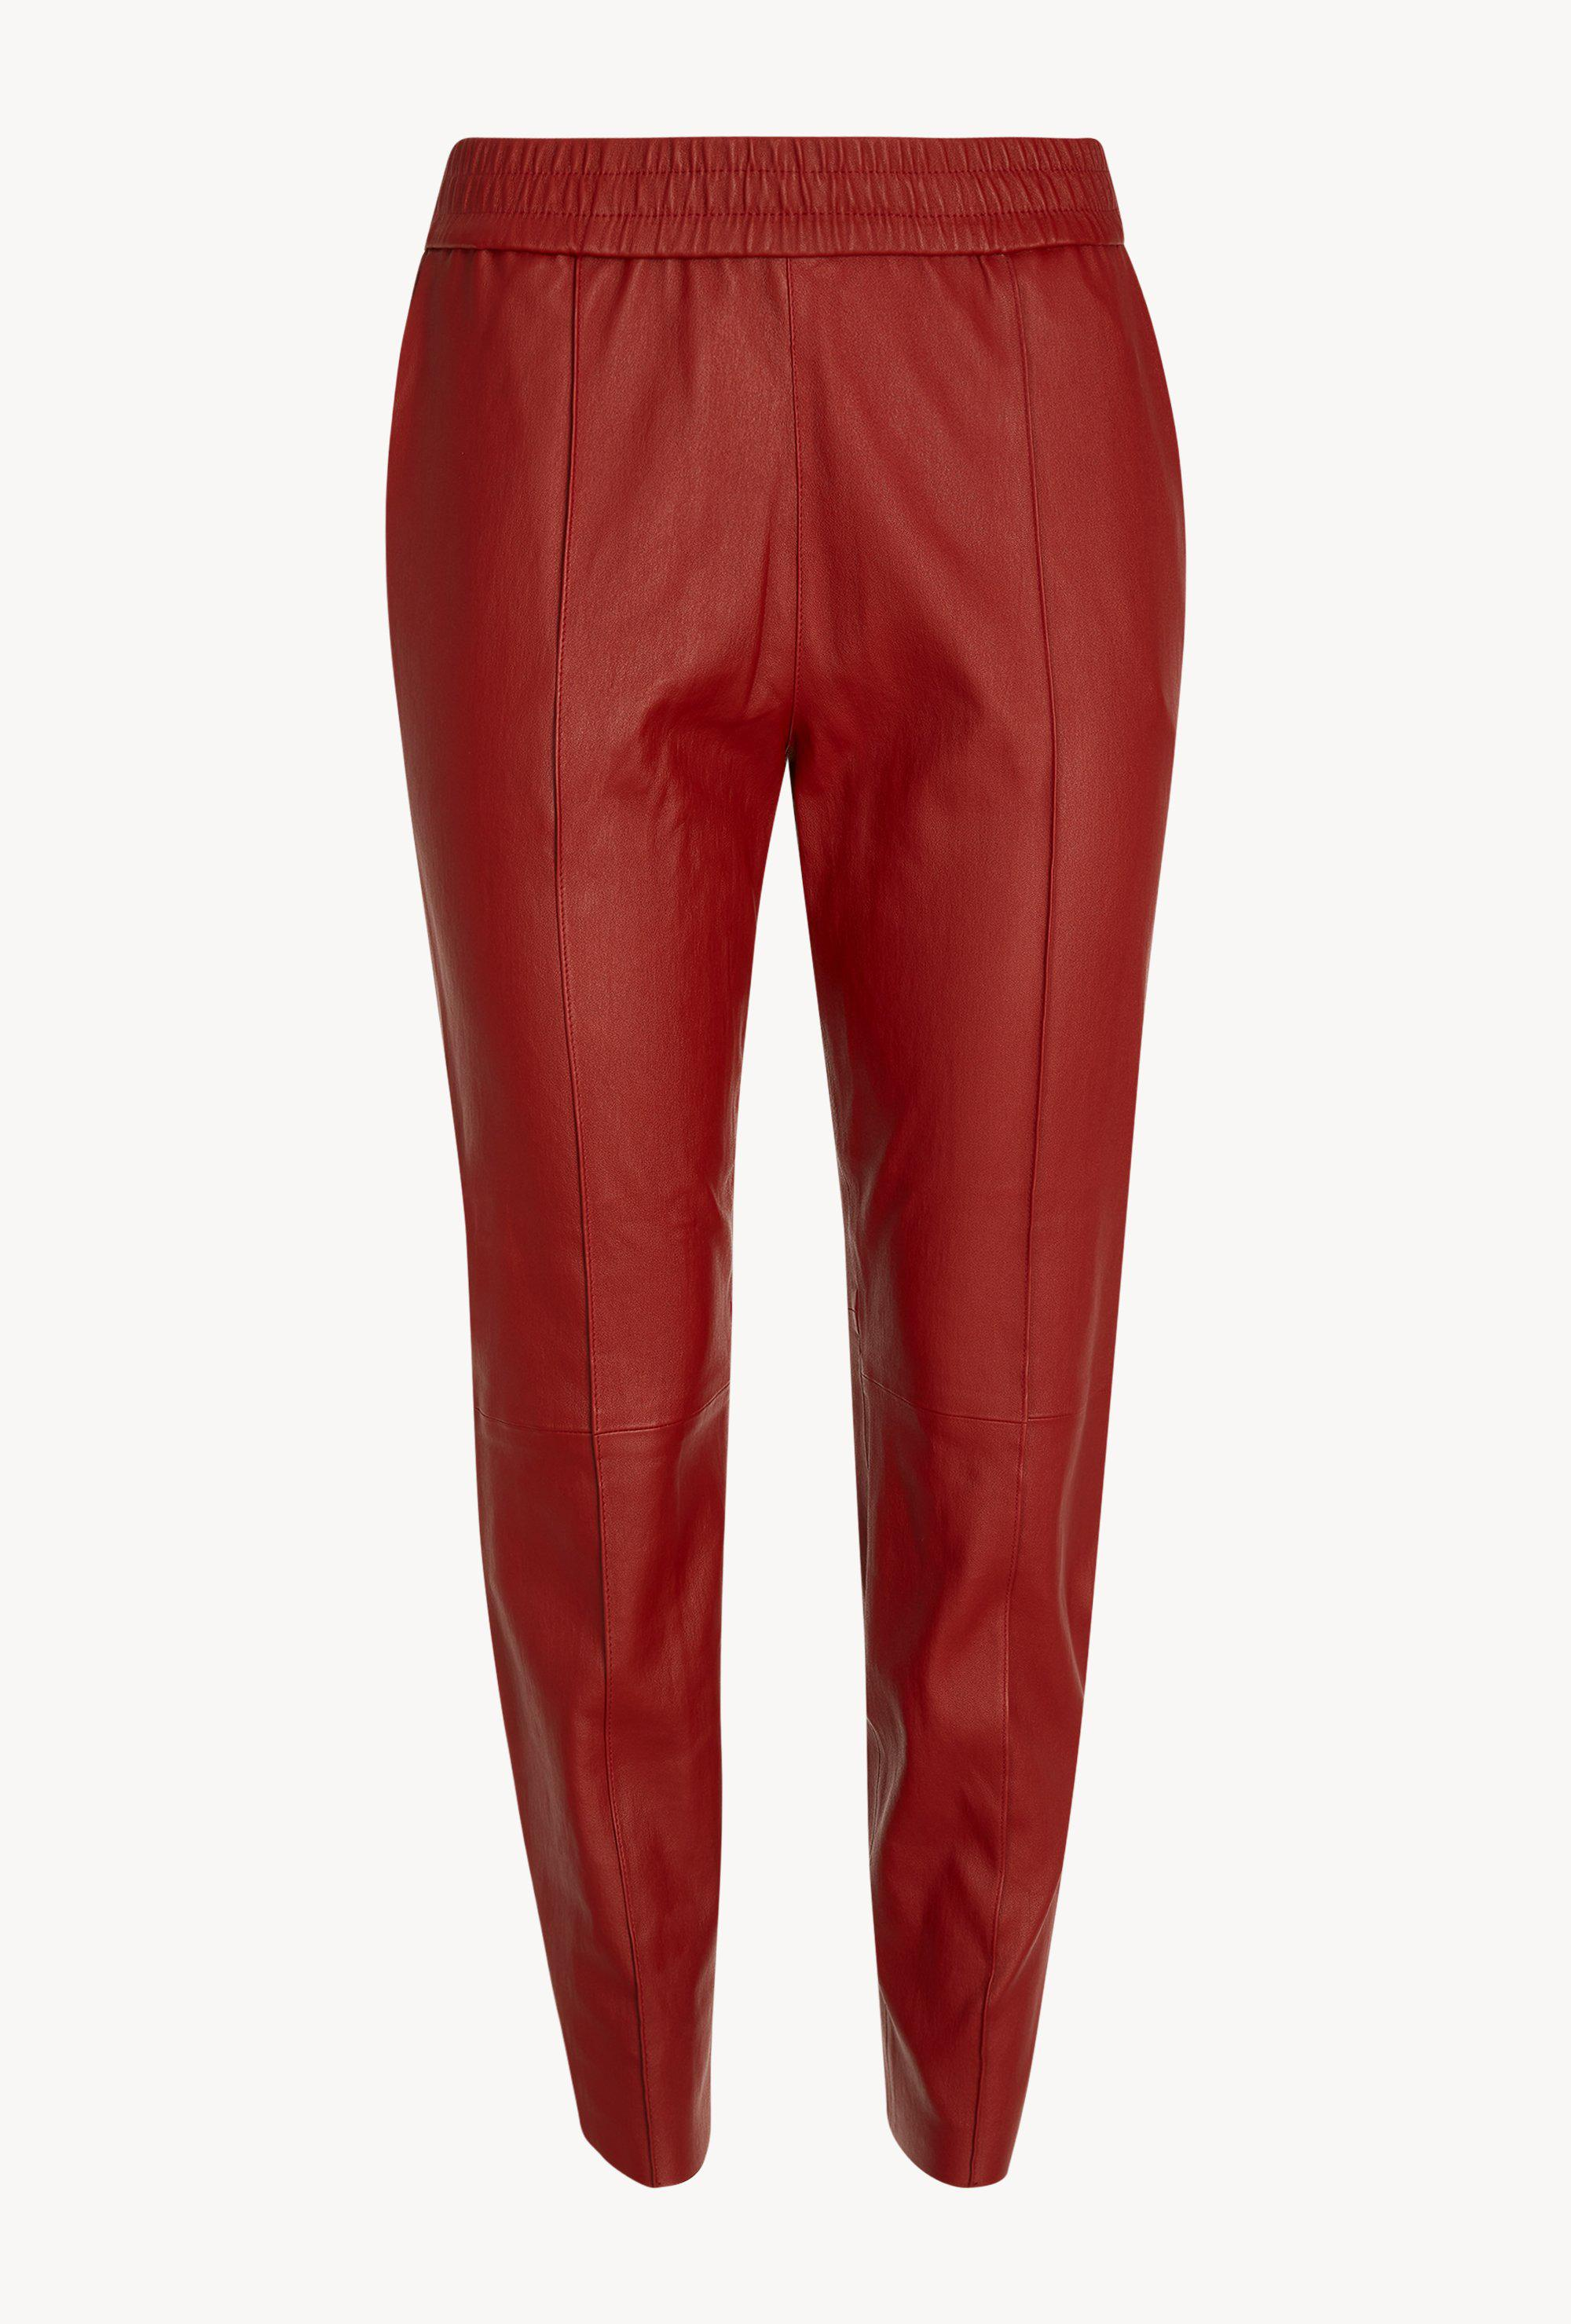 Blood Red Slim Fit Athletic Leather Joggers 3